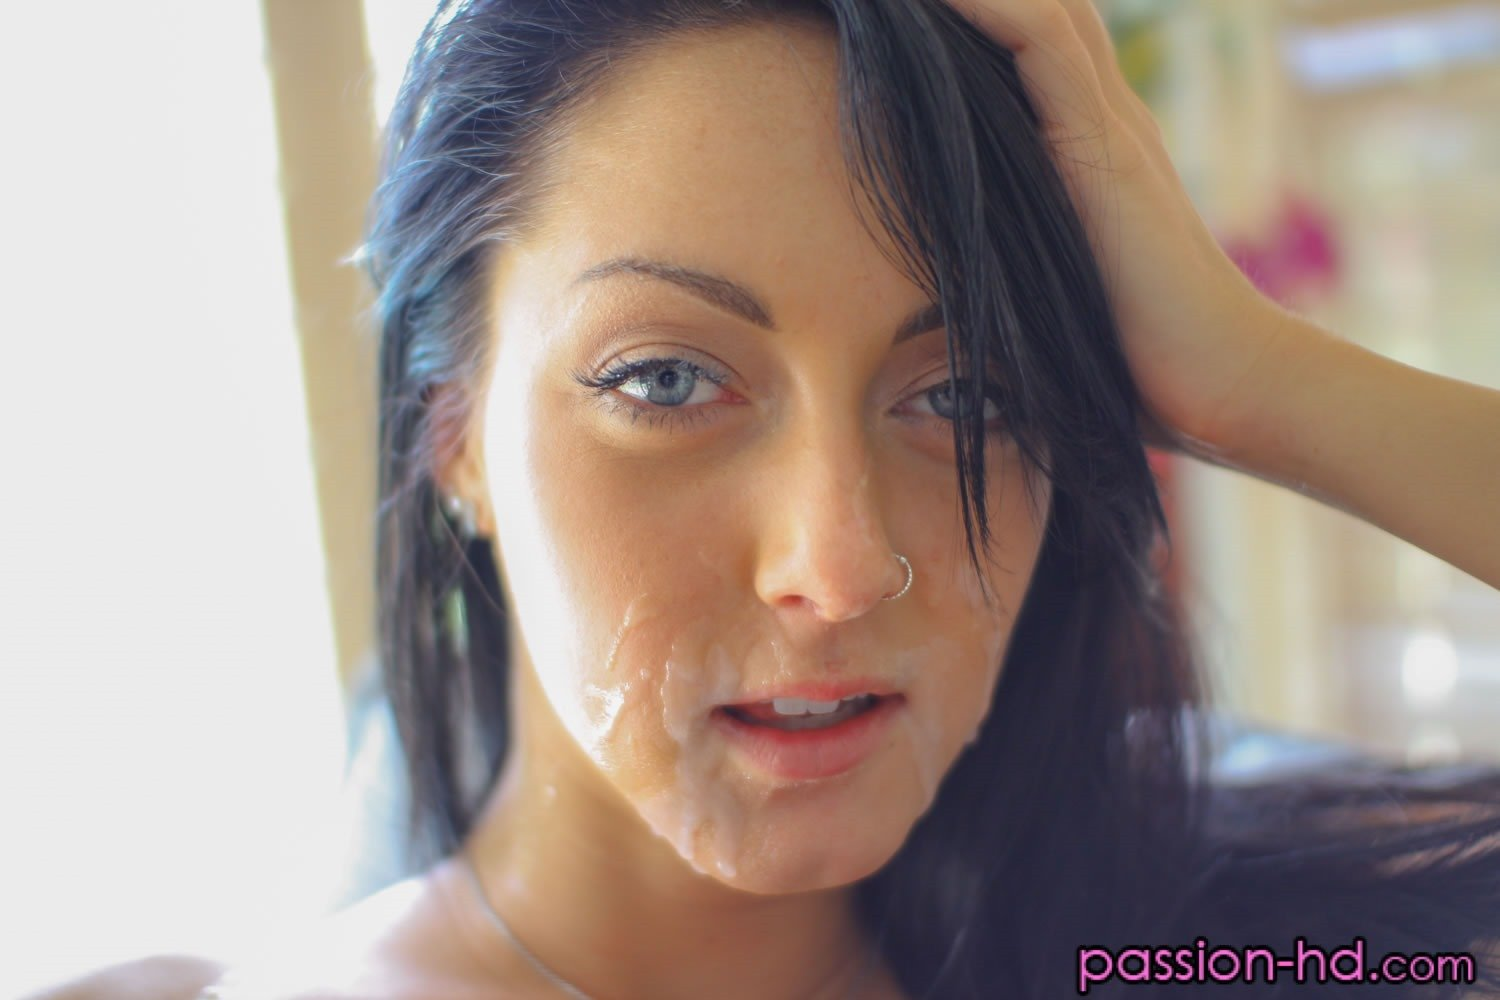 Lucky guy gets to fuck his wife and hot blonde neighbour girl 8